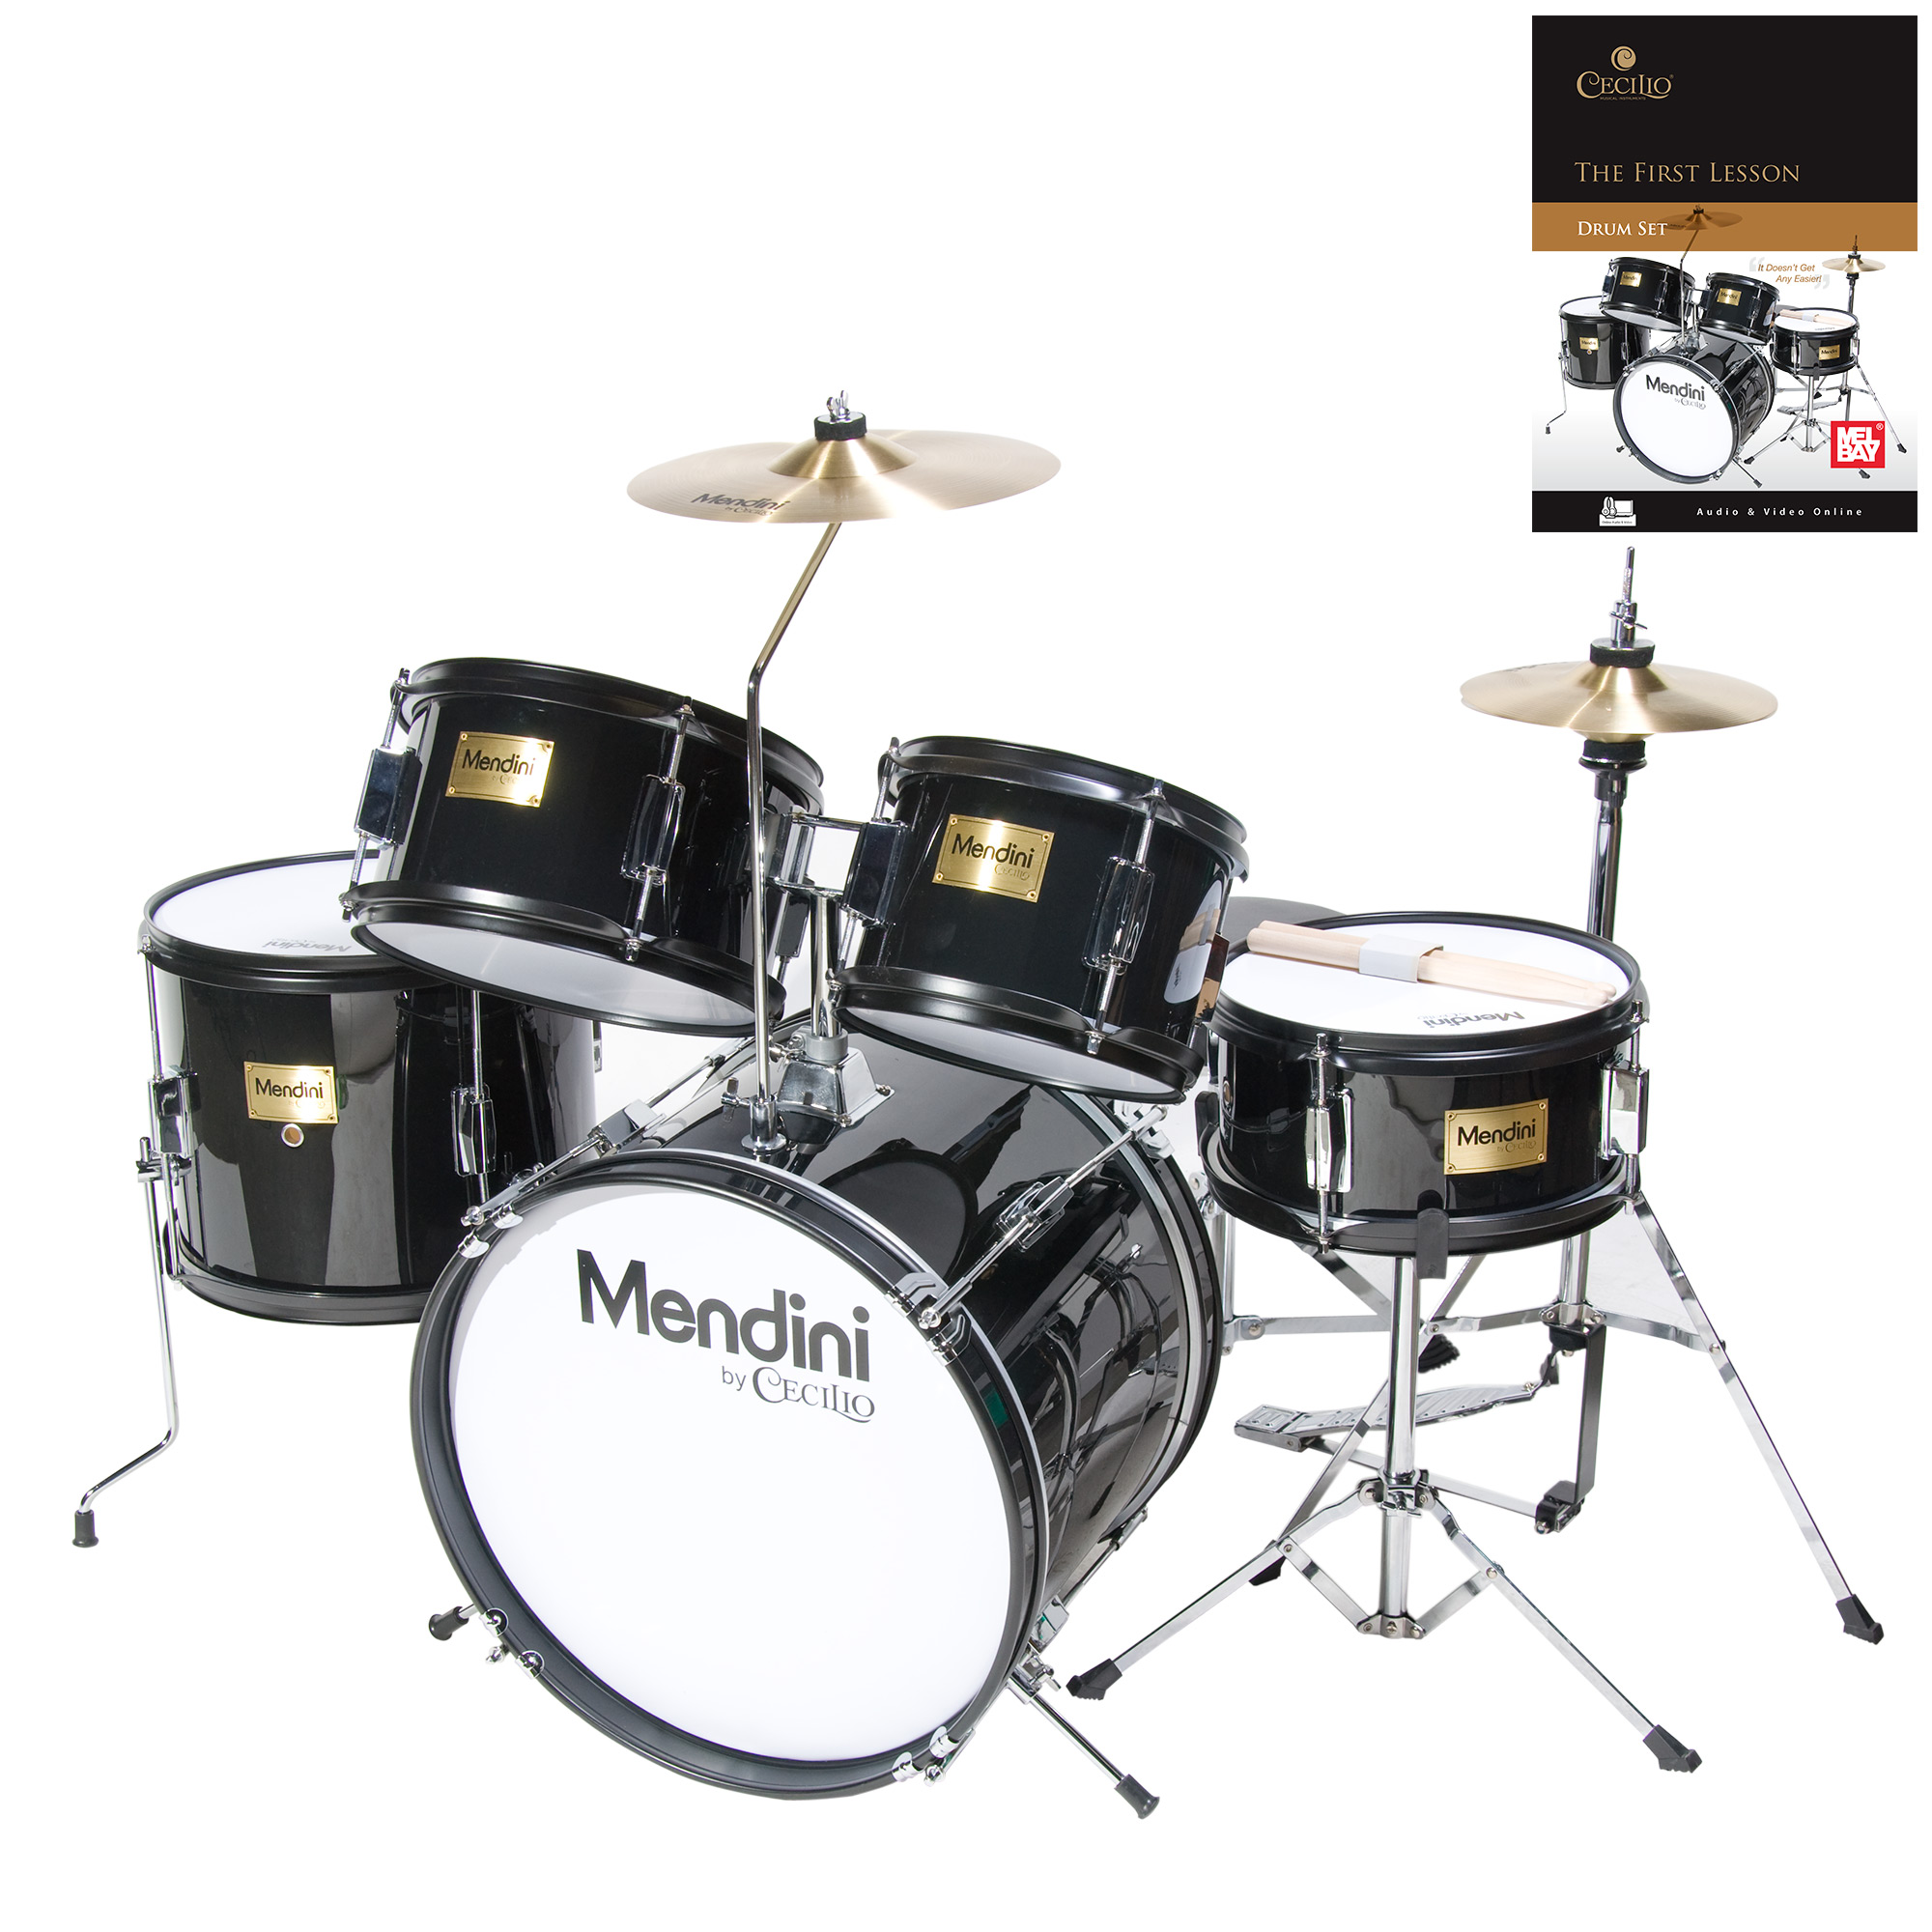 "Mendini by Cecilio 16"" 5-Piece Complete Kids / Junior Drum Set with Adjustable Throne, Cymbal, Pedal, Drumsticks & Lesson Book, Metallic Black, MJDS-5-BK"